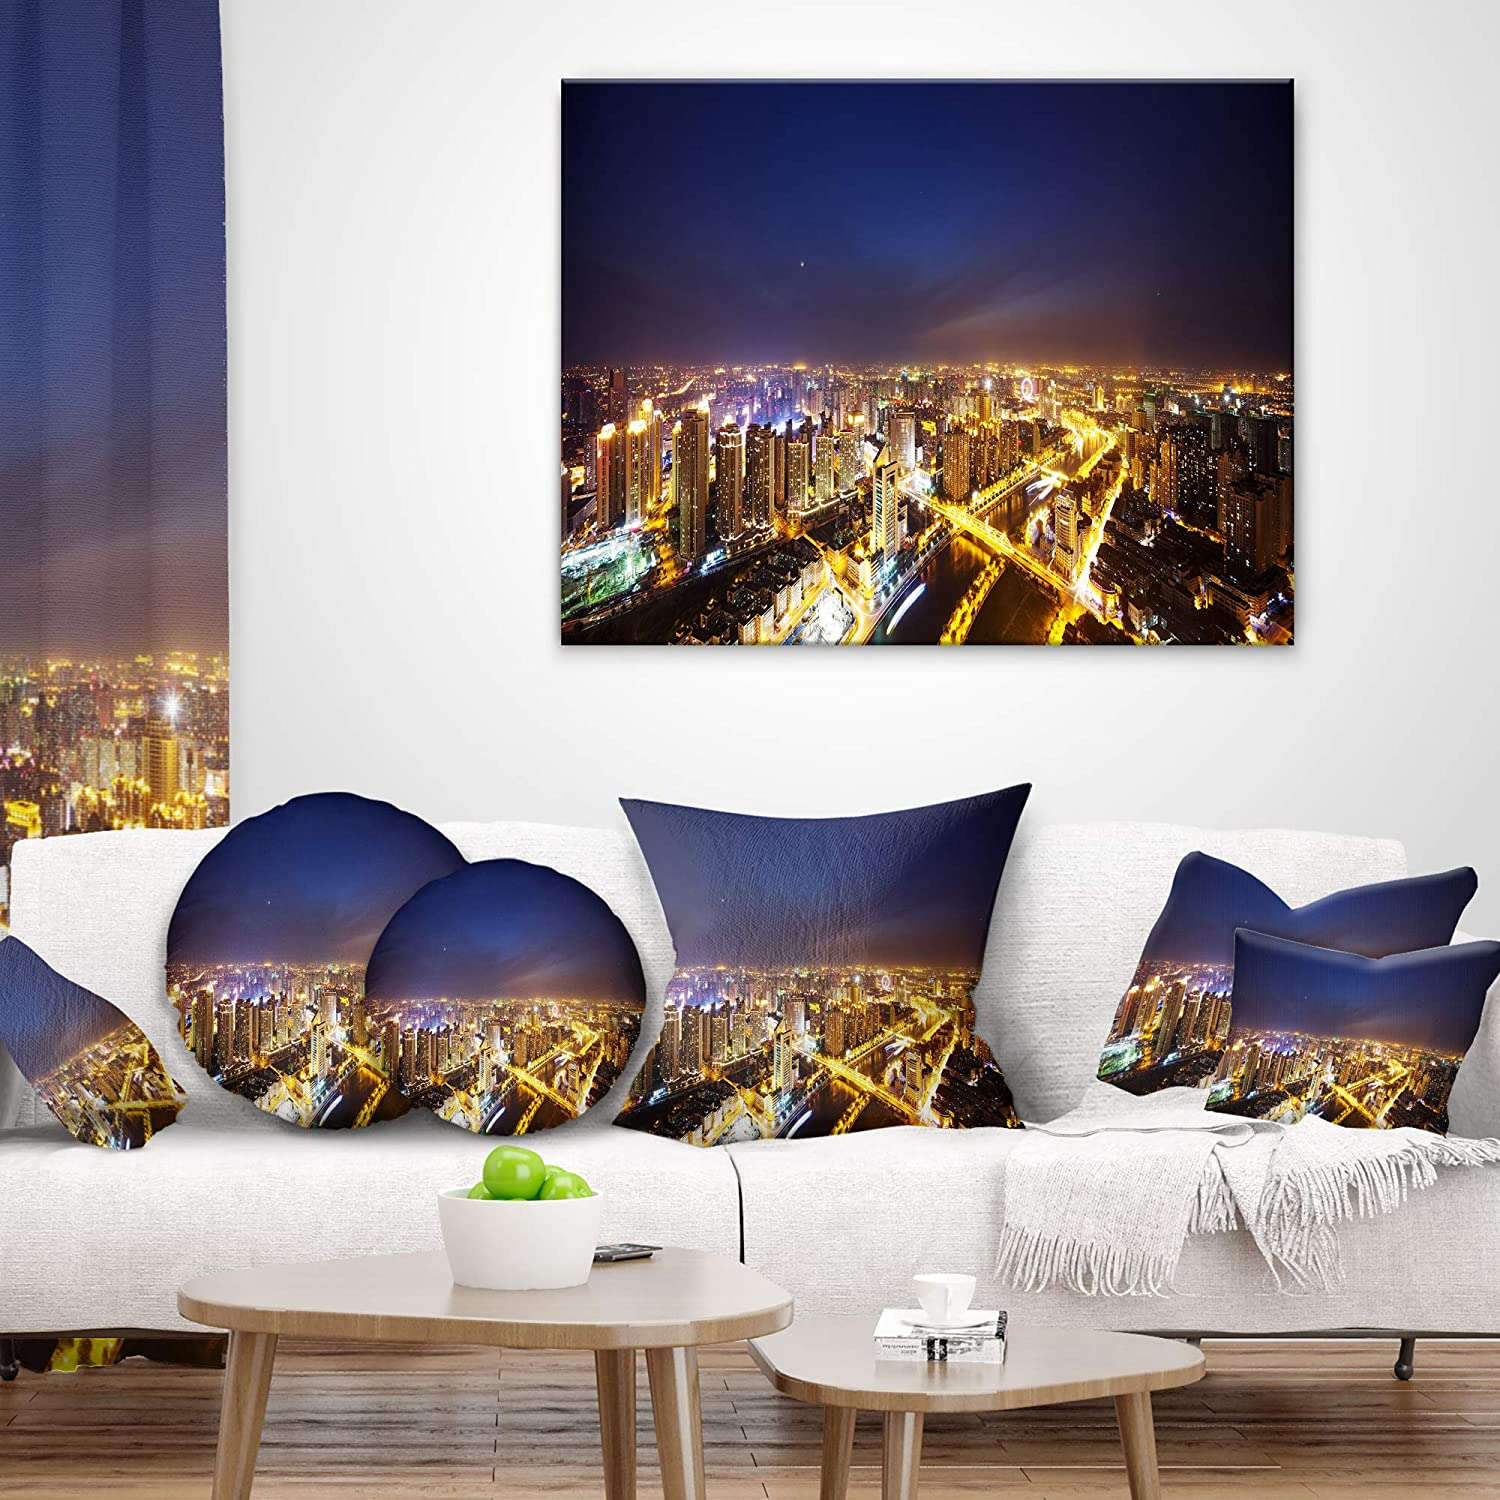 Designart Cu10997 26 26 Downtown Nighttime Panorama Cityscape Cushion Cover For Living Room Insert Printed On